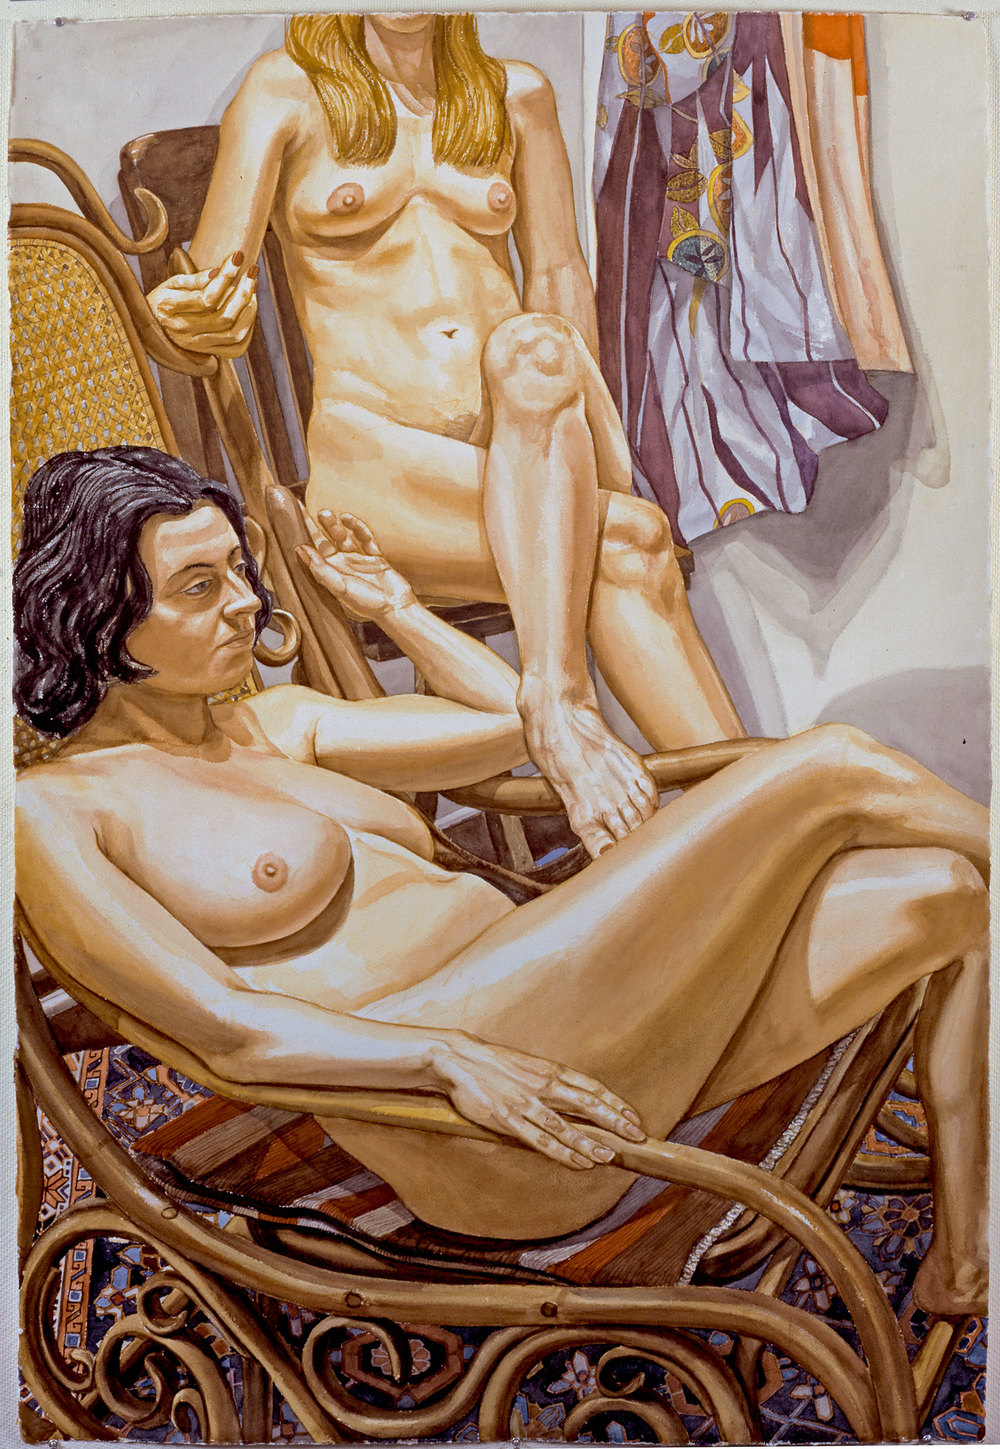 TWO NUDES, BENT WOOD CHAIR, KIMONO , 1998 Watercolor on paper 60 x 40 inches